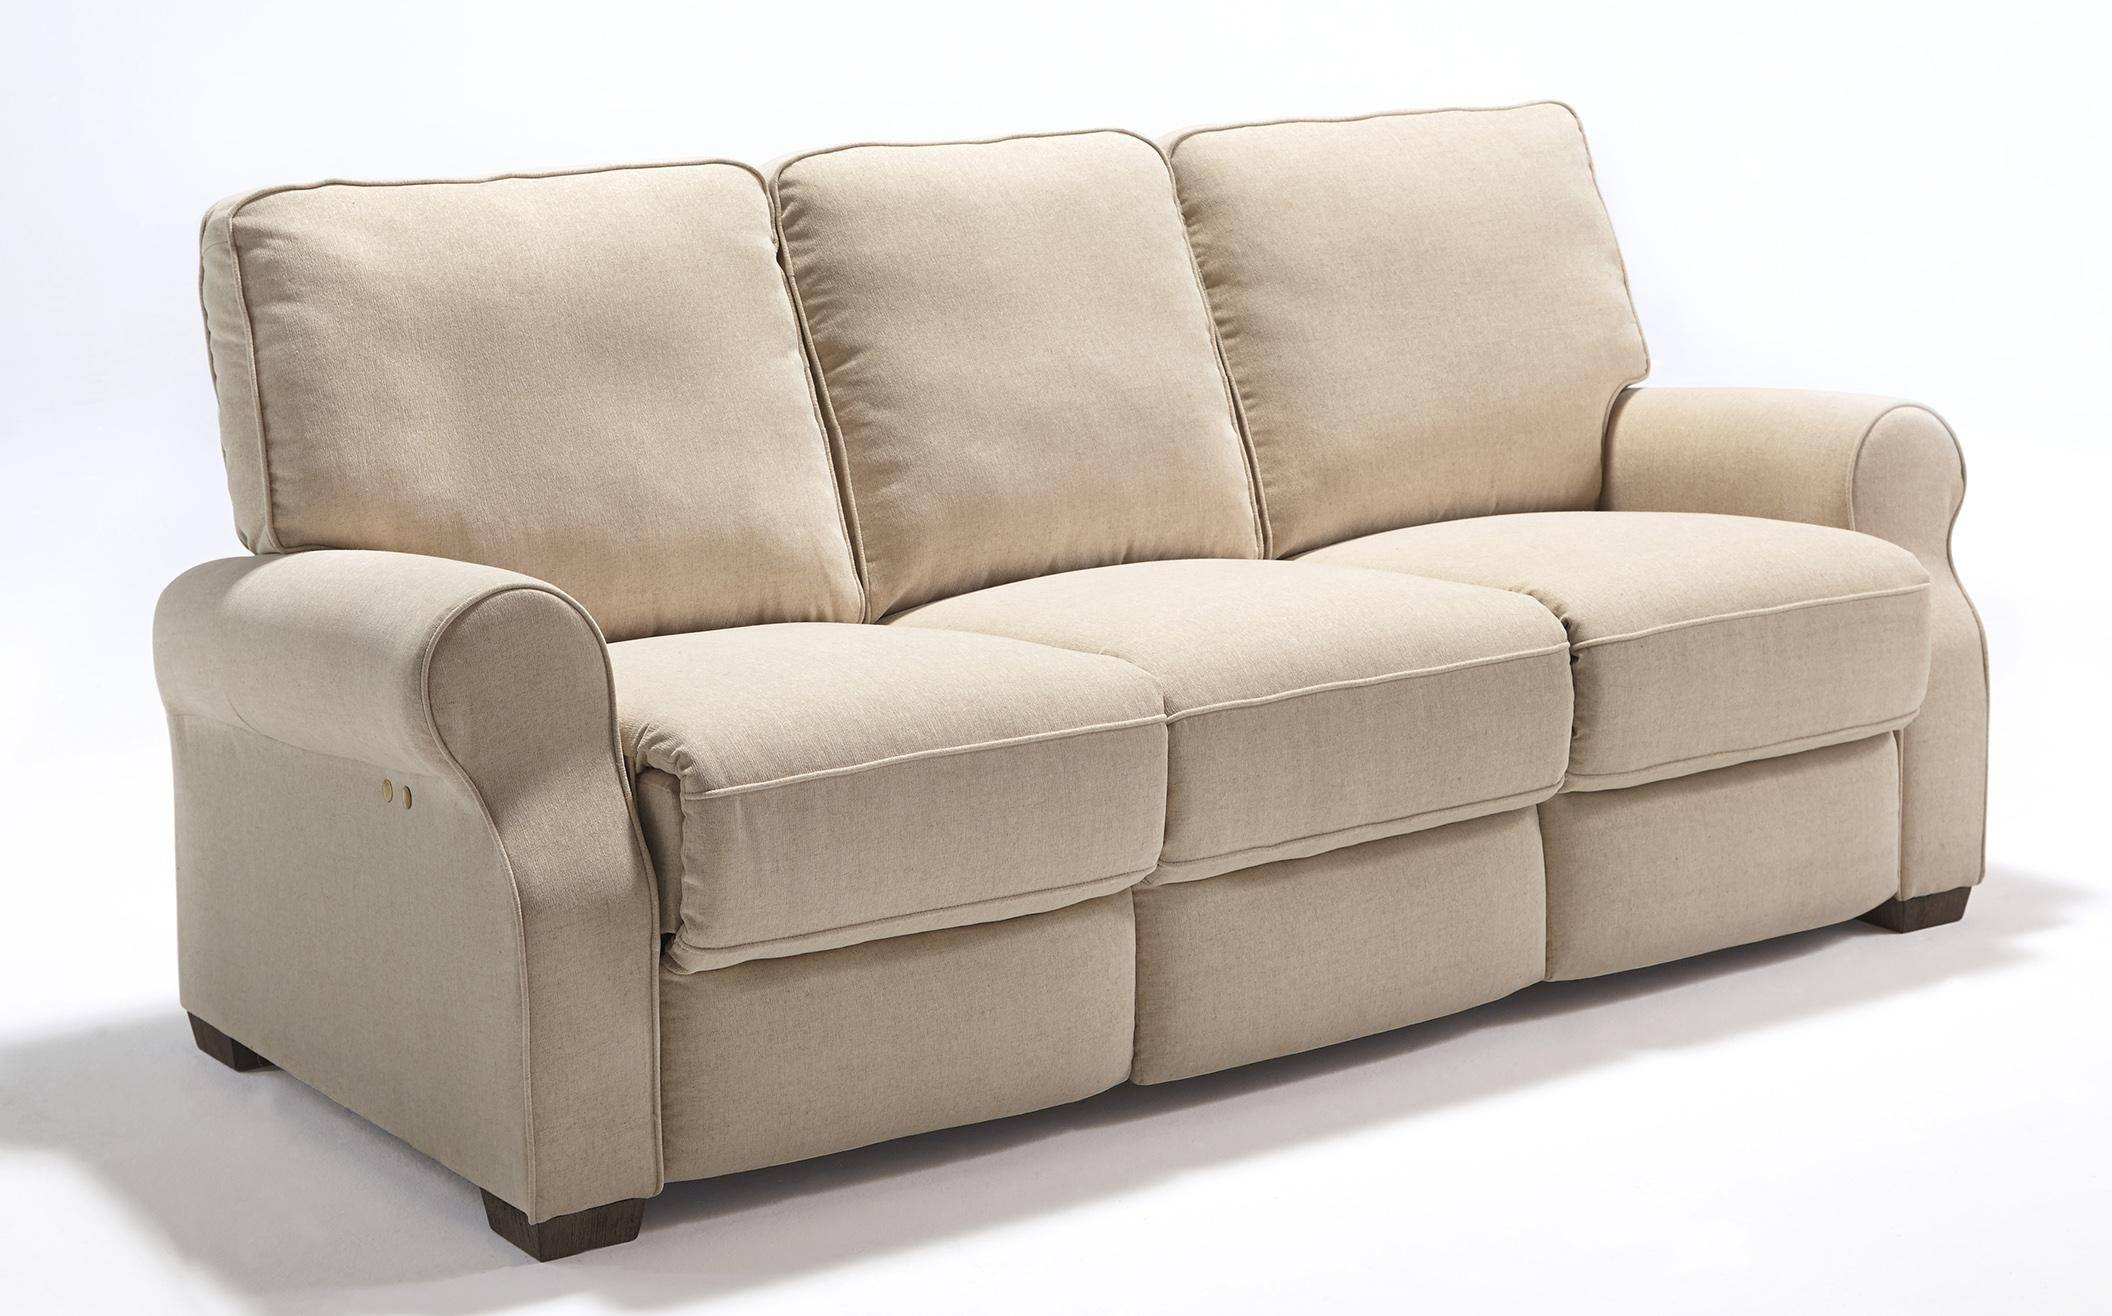 Best Home Furnishings Hattie Traditional Power Reclining Sofa With within Recliner Sofa Chairs (Image 6 of 30)